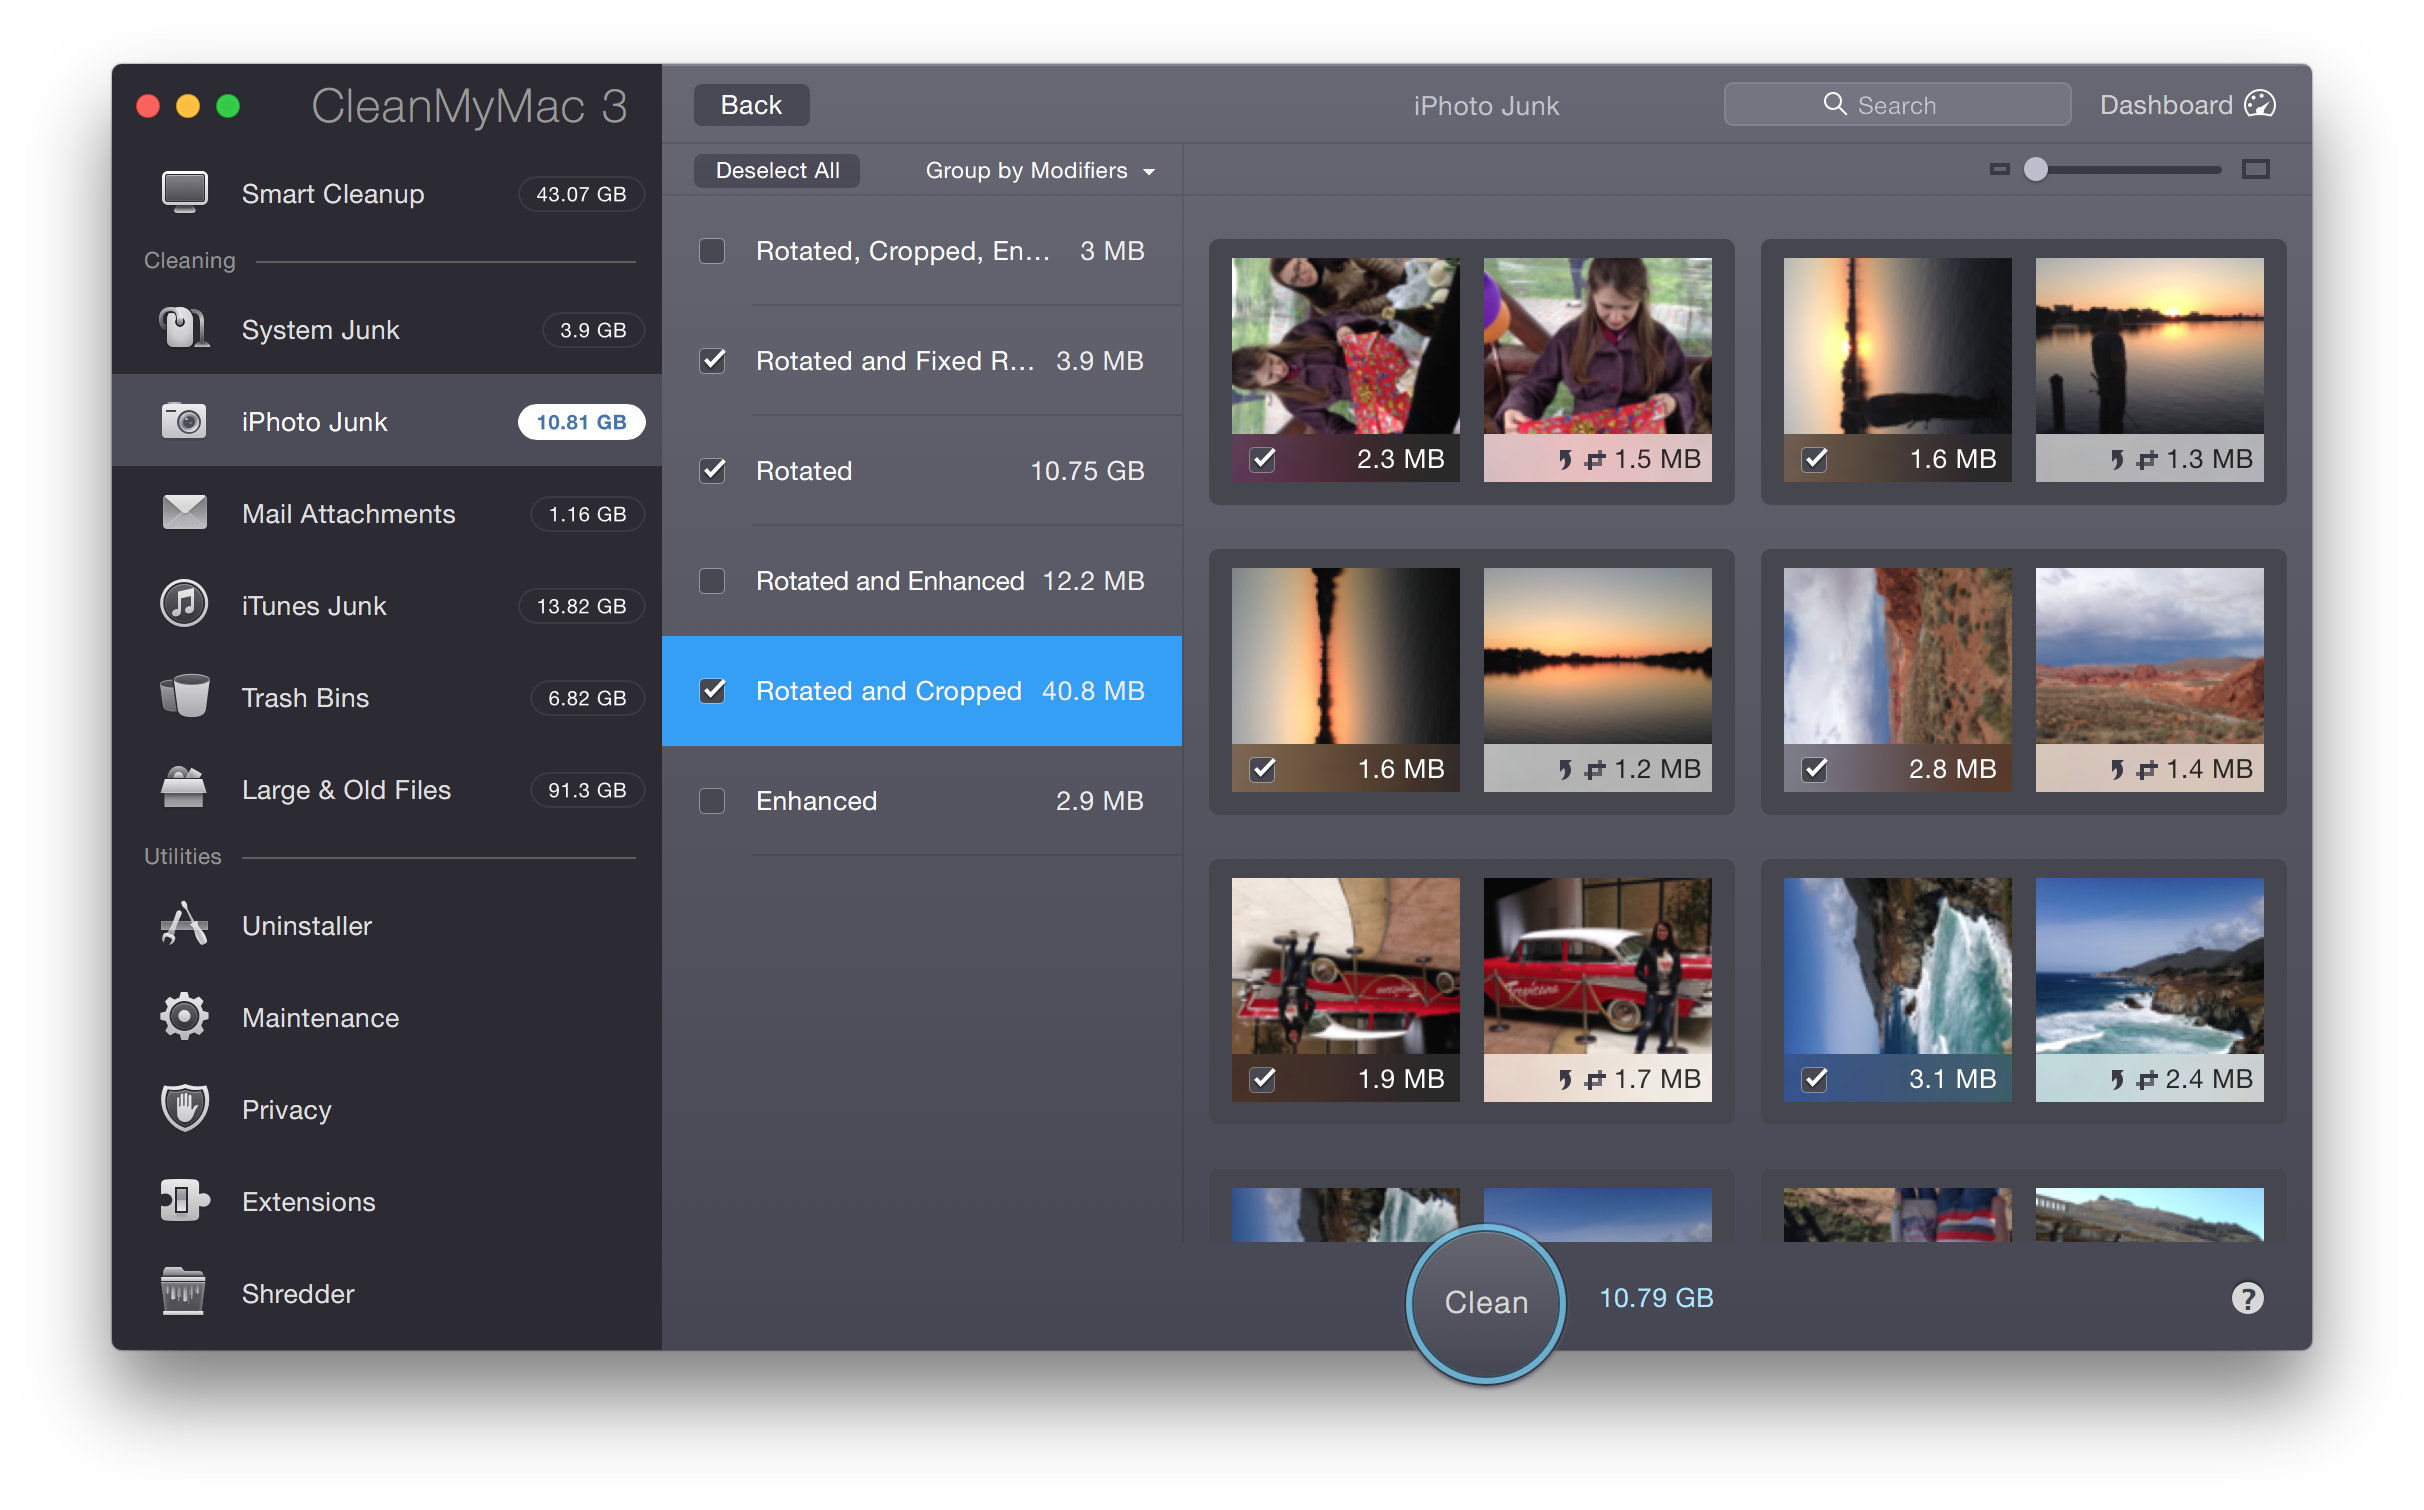 3.4 iPhoto Junk –Detailed Results